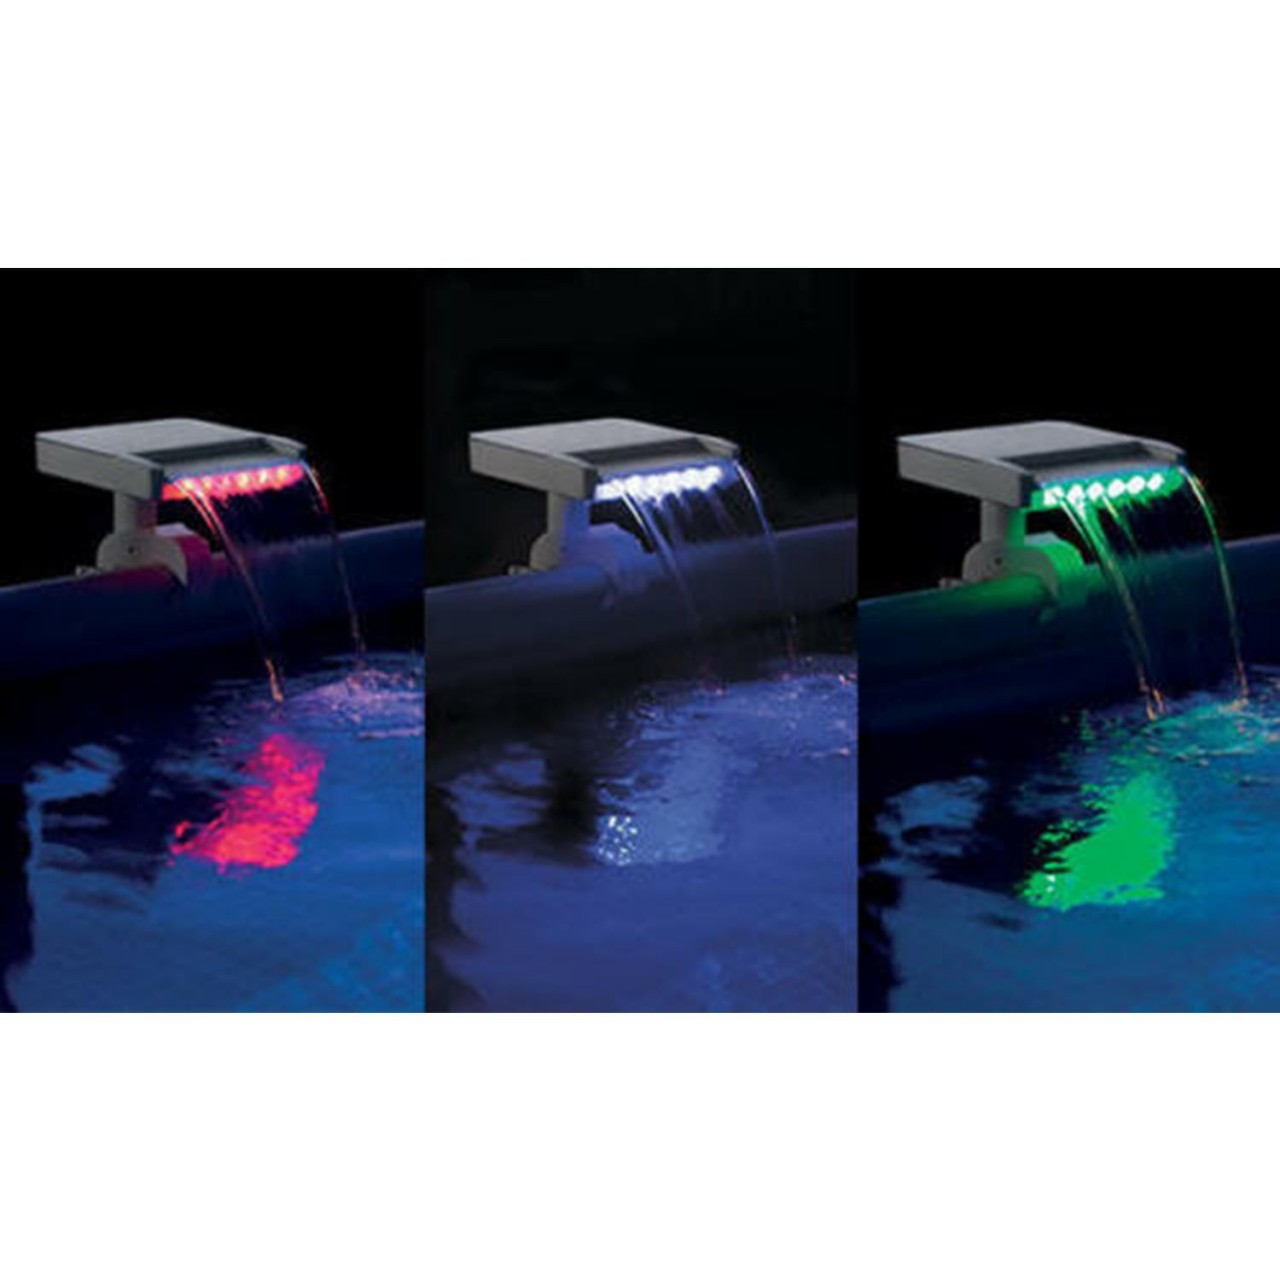 Intex 28090 Wasserfall Cascade Springbrunnen Multi-Color LED Pool Becken Sprayer